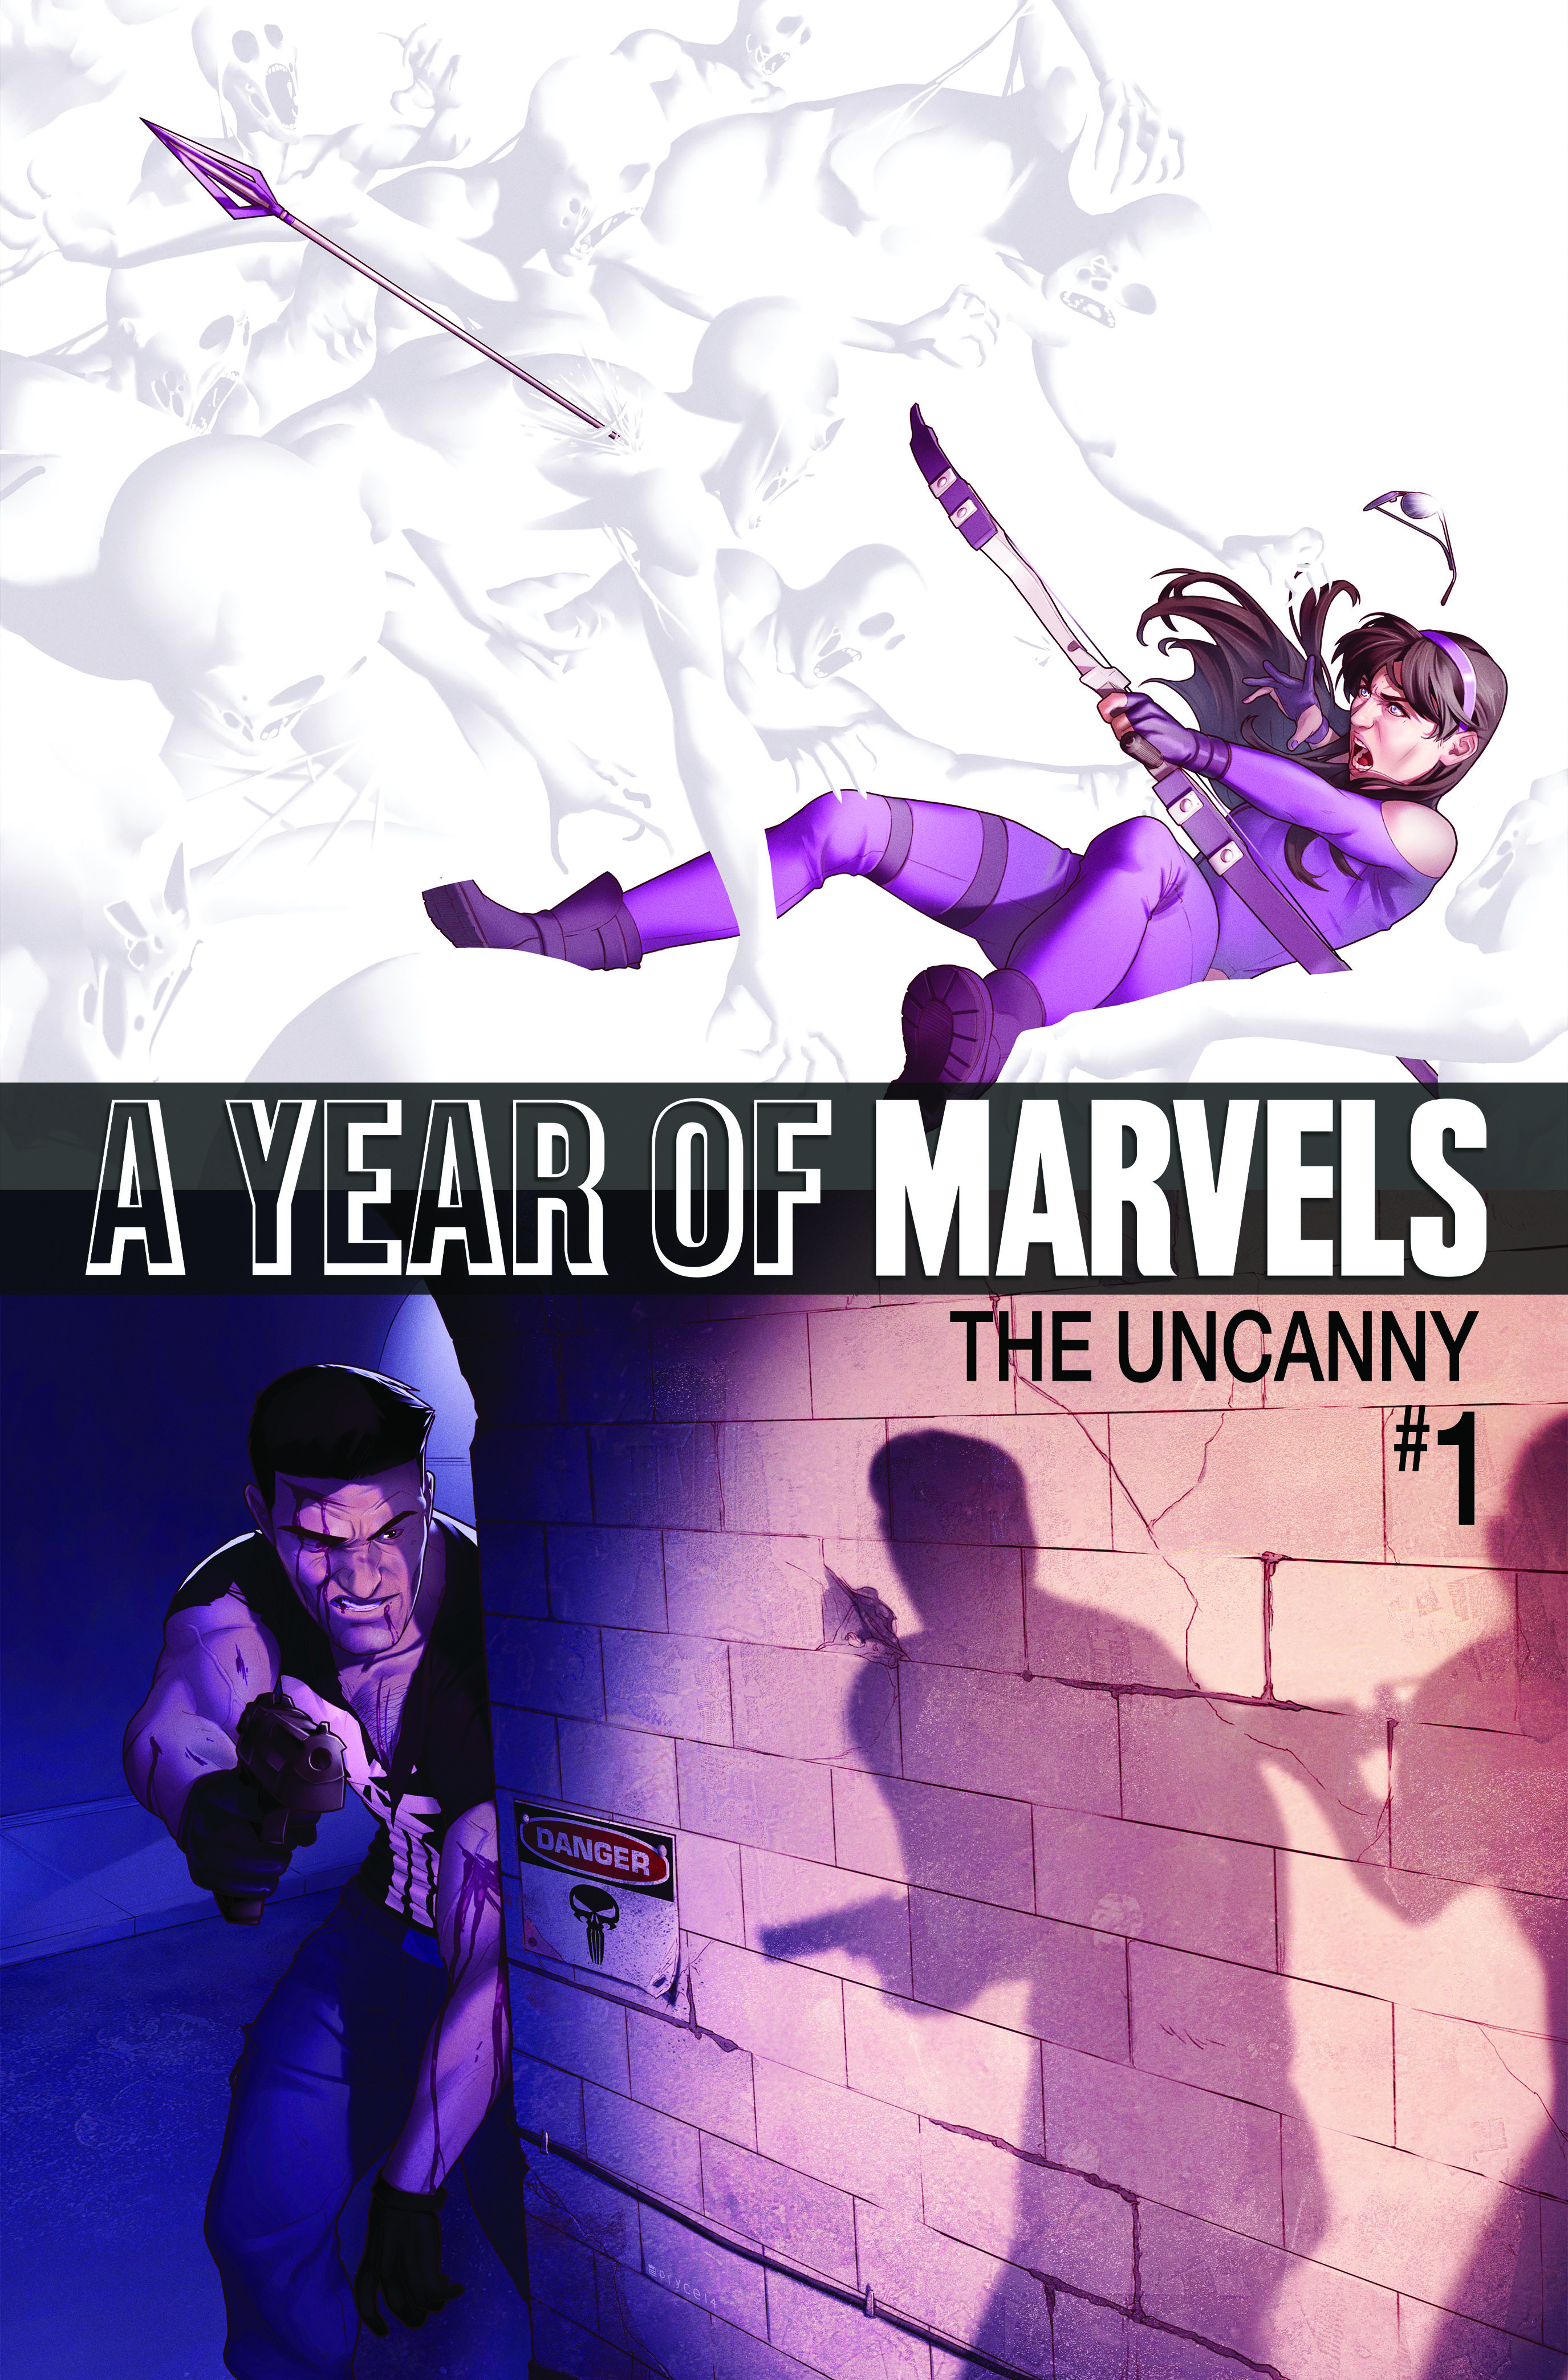 A Year of Marvels: The Incredible (2016) #5